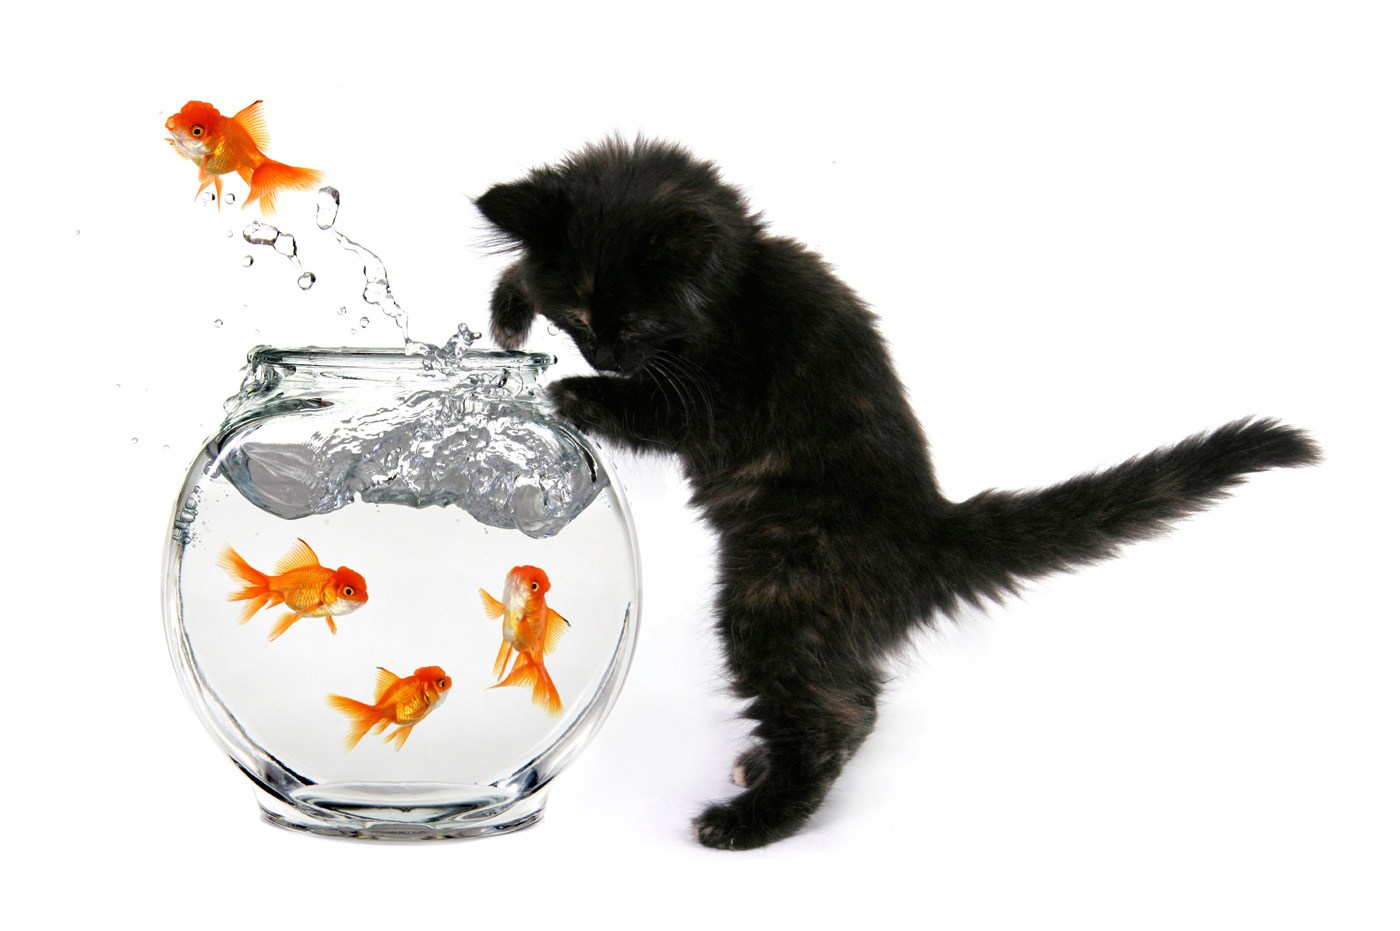 Cat and goldfish 3224